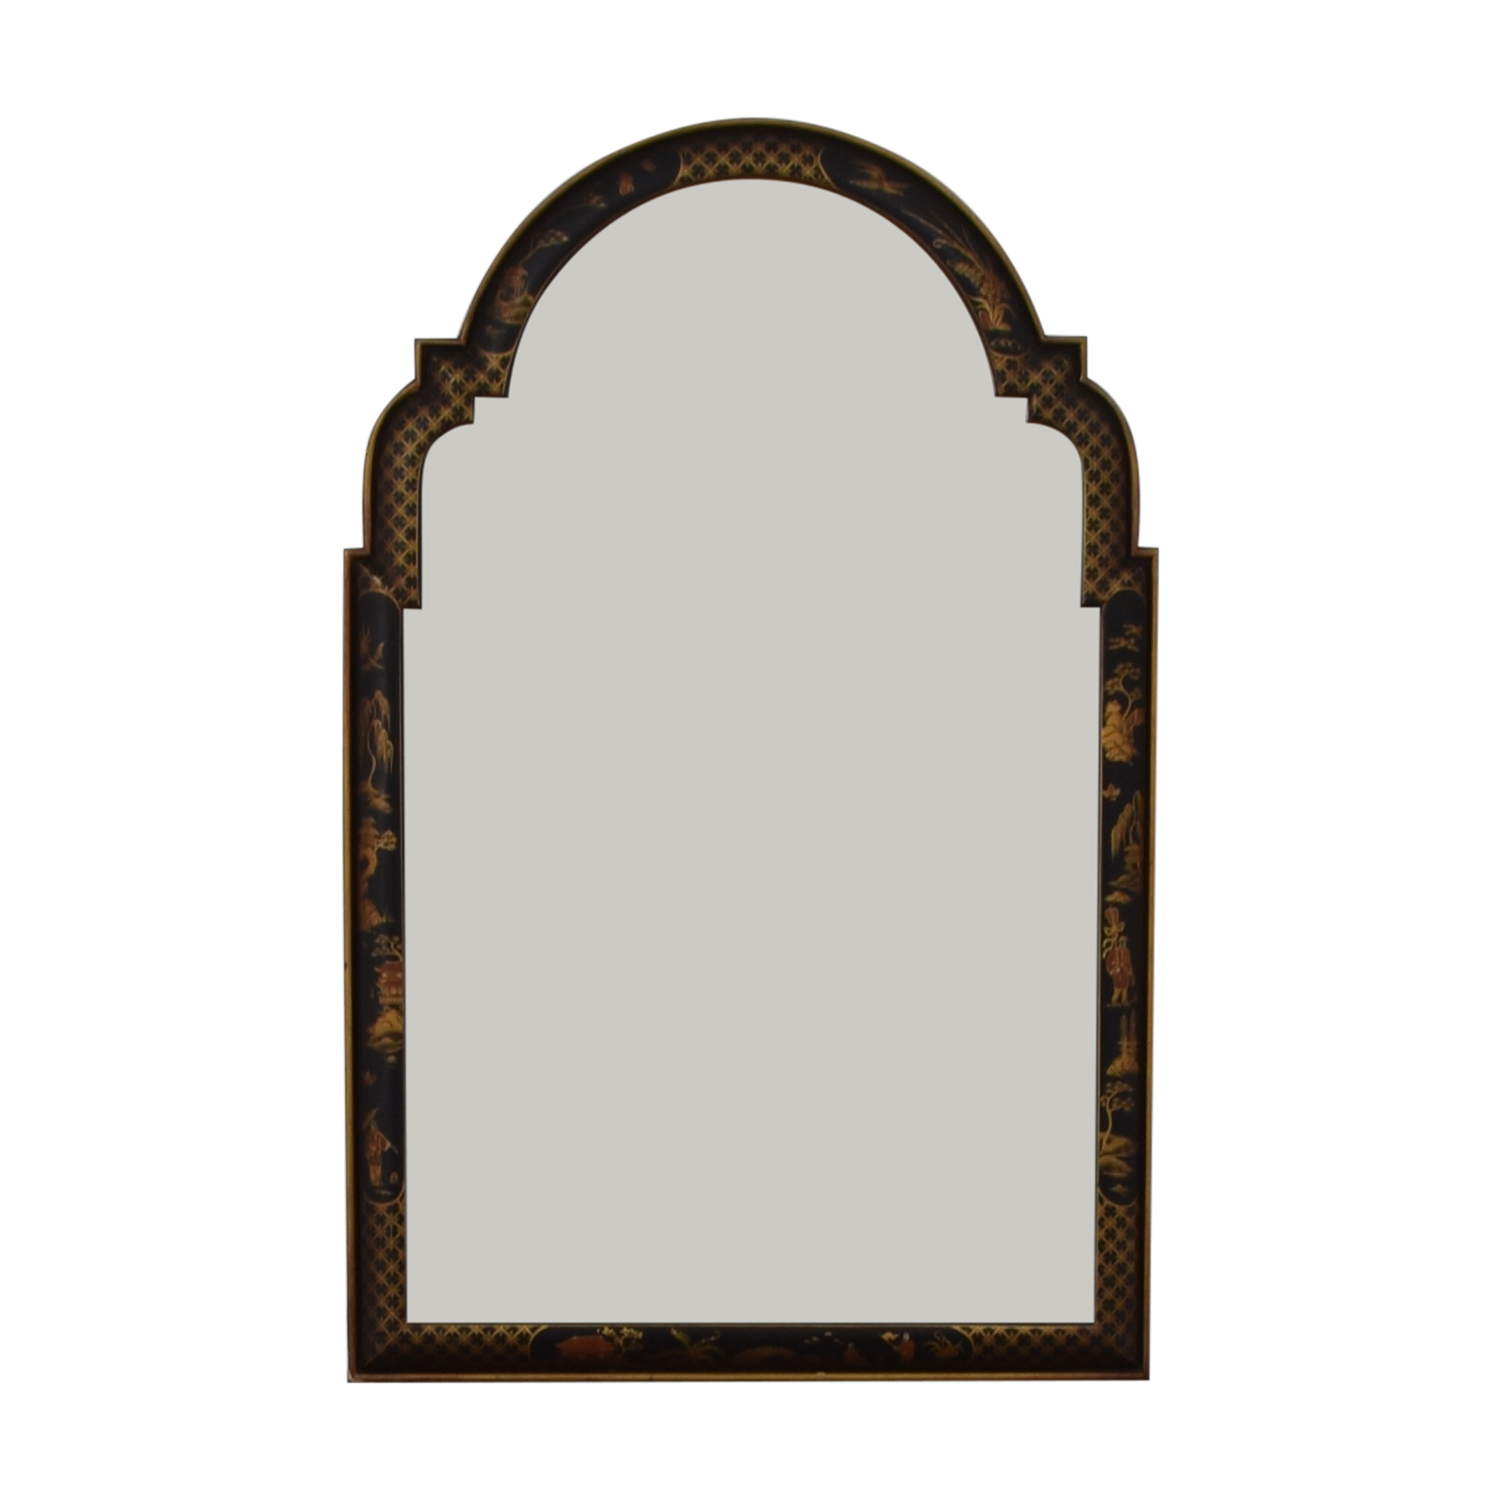 shop  Black Lacquer Frame with Japanese Drawings Wall Mirror online